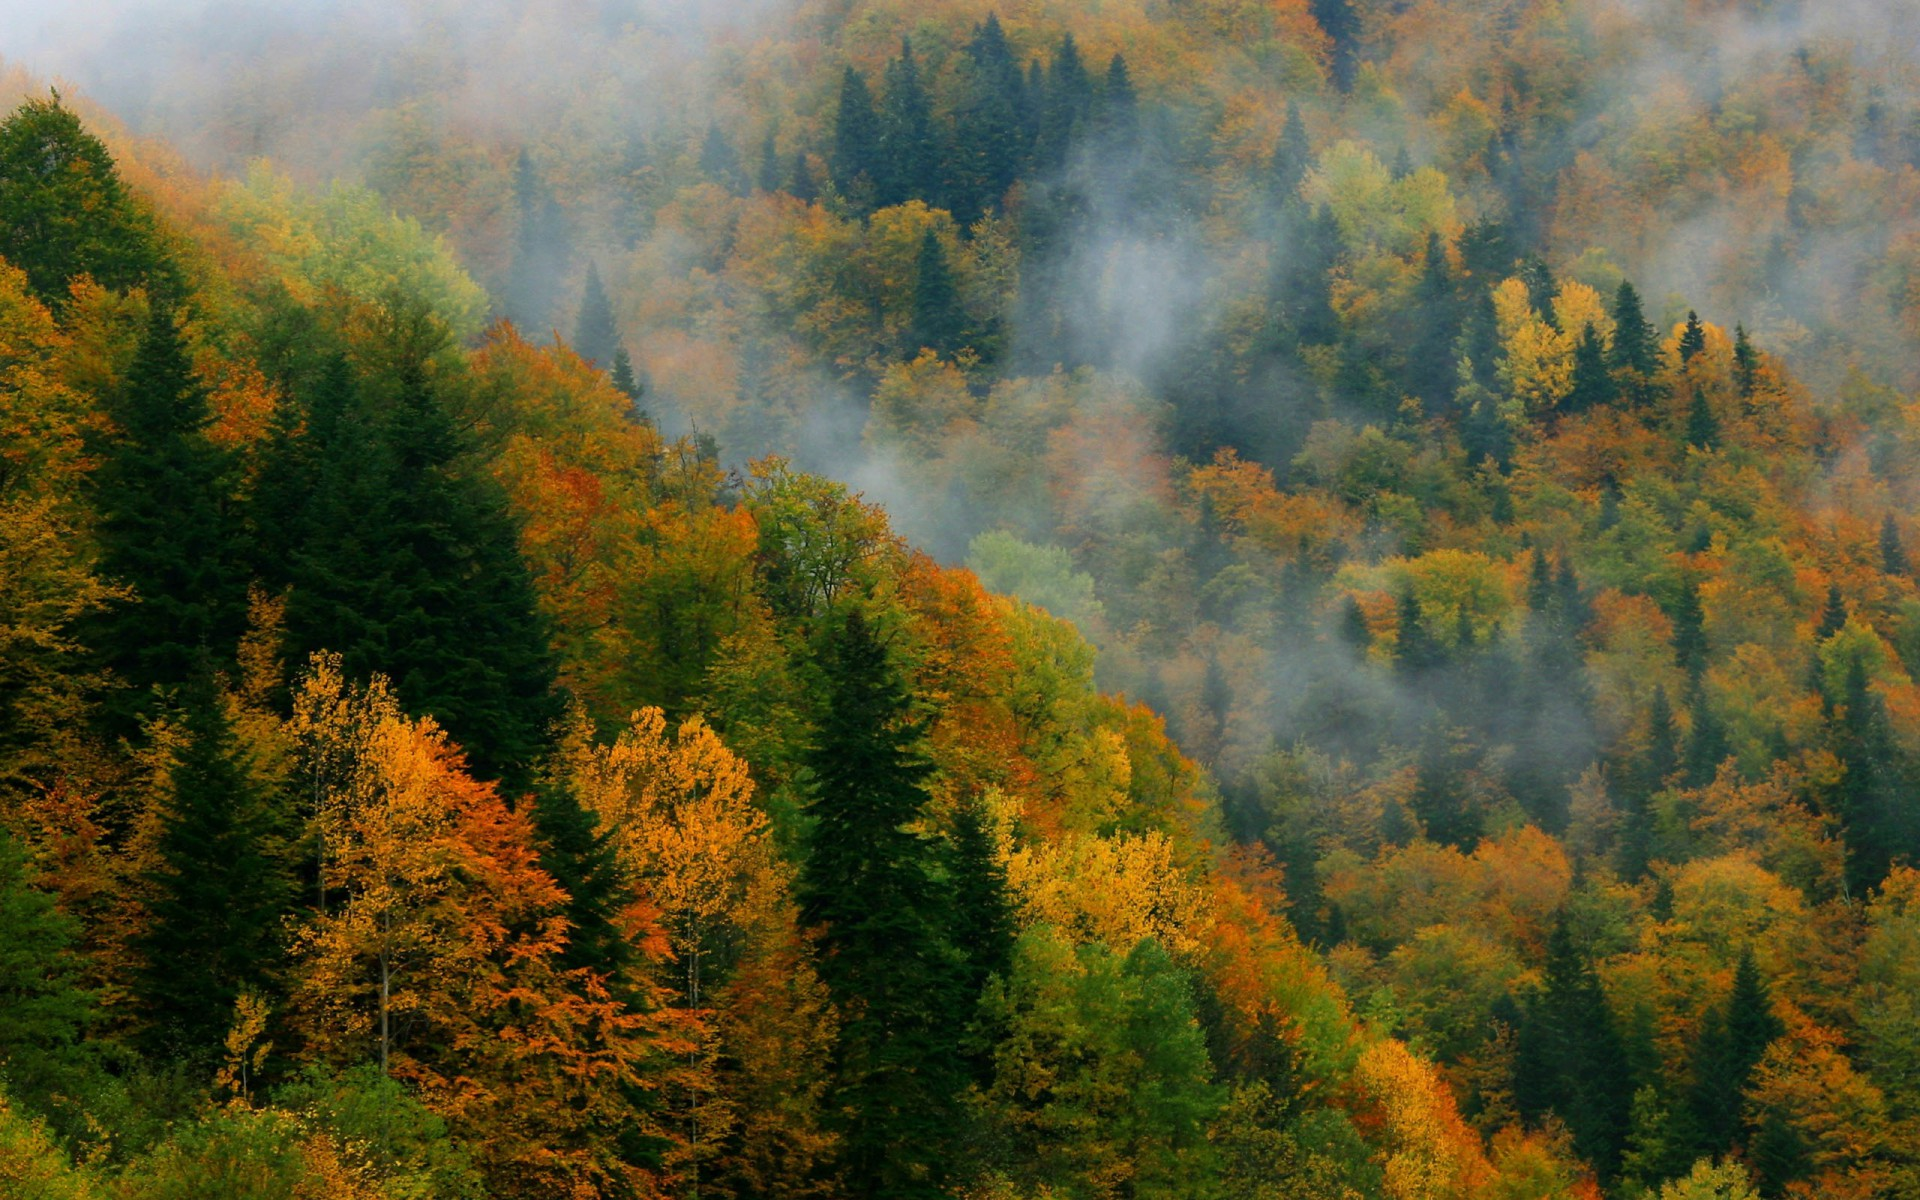 Fall Trees Wallpaper For Desktop Autumn Forest Azerbaijan Asia Wallpapers Autumn Forest